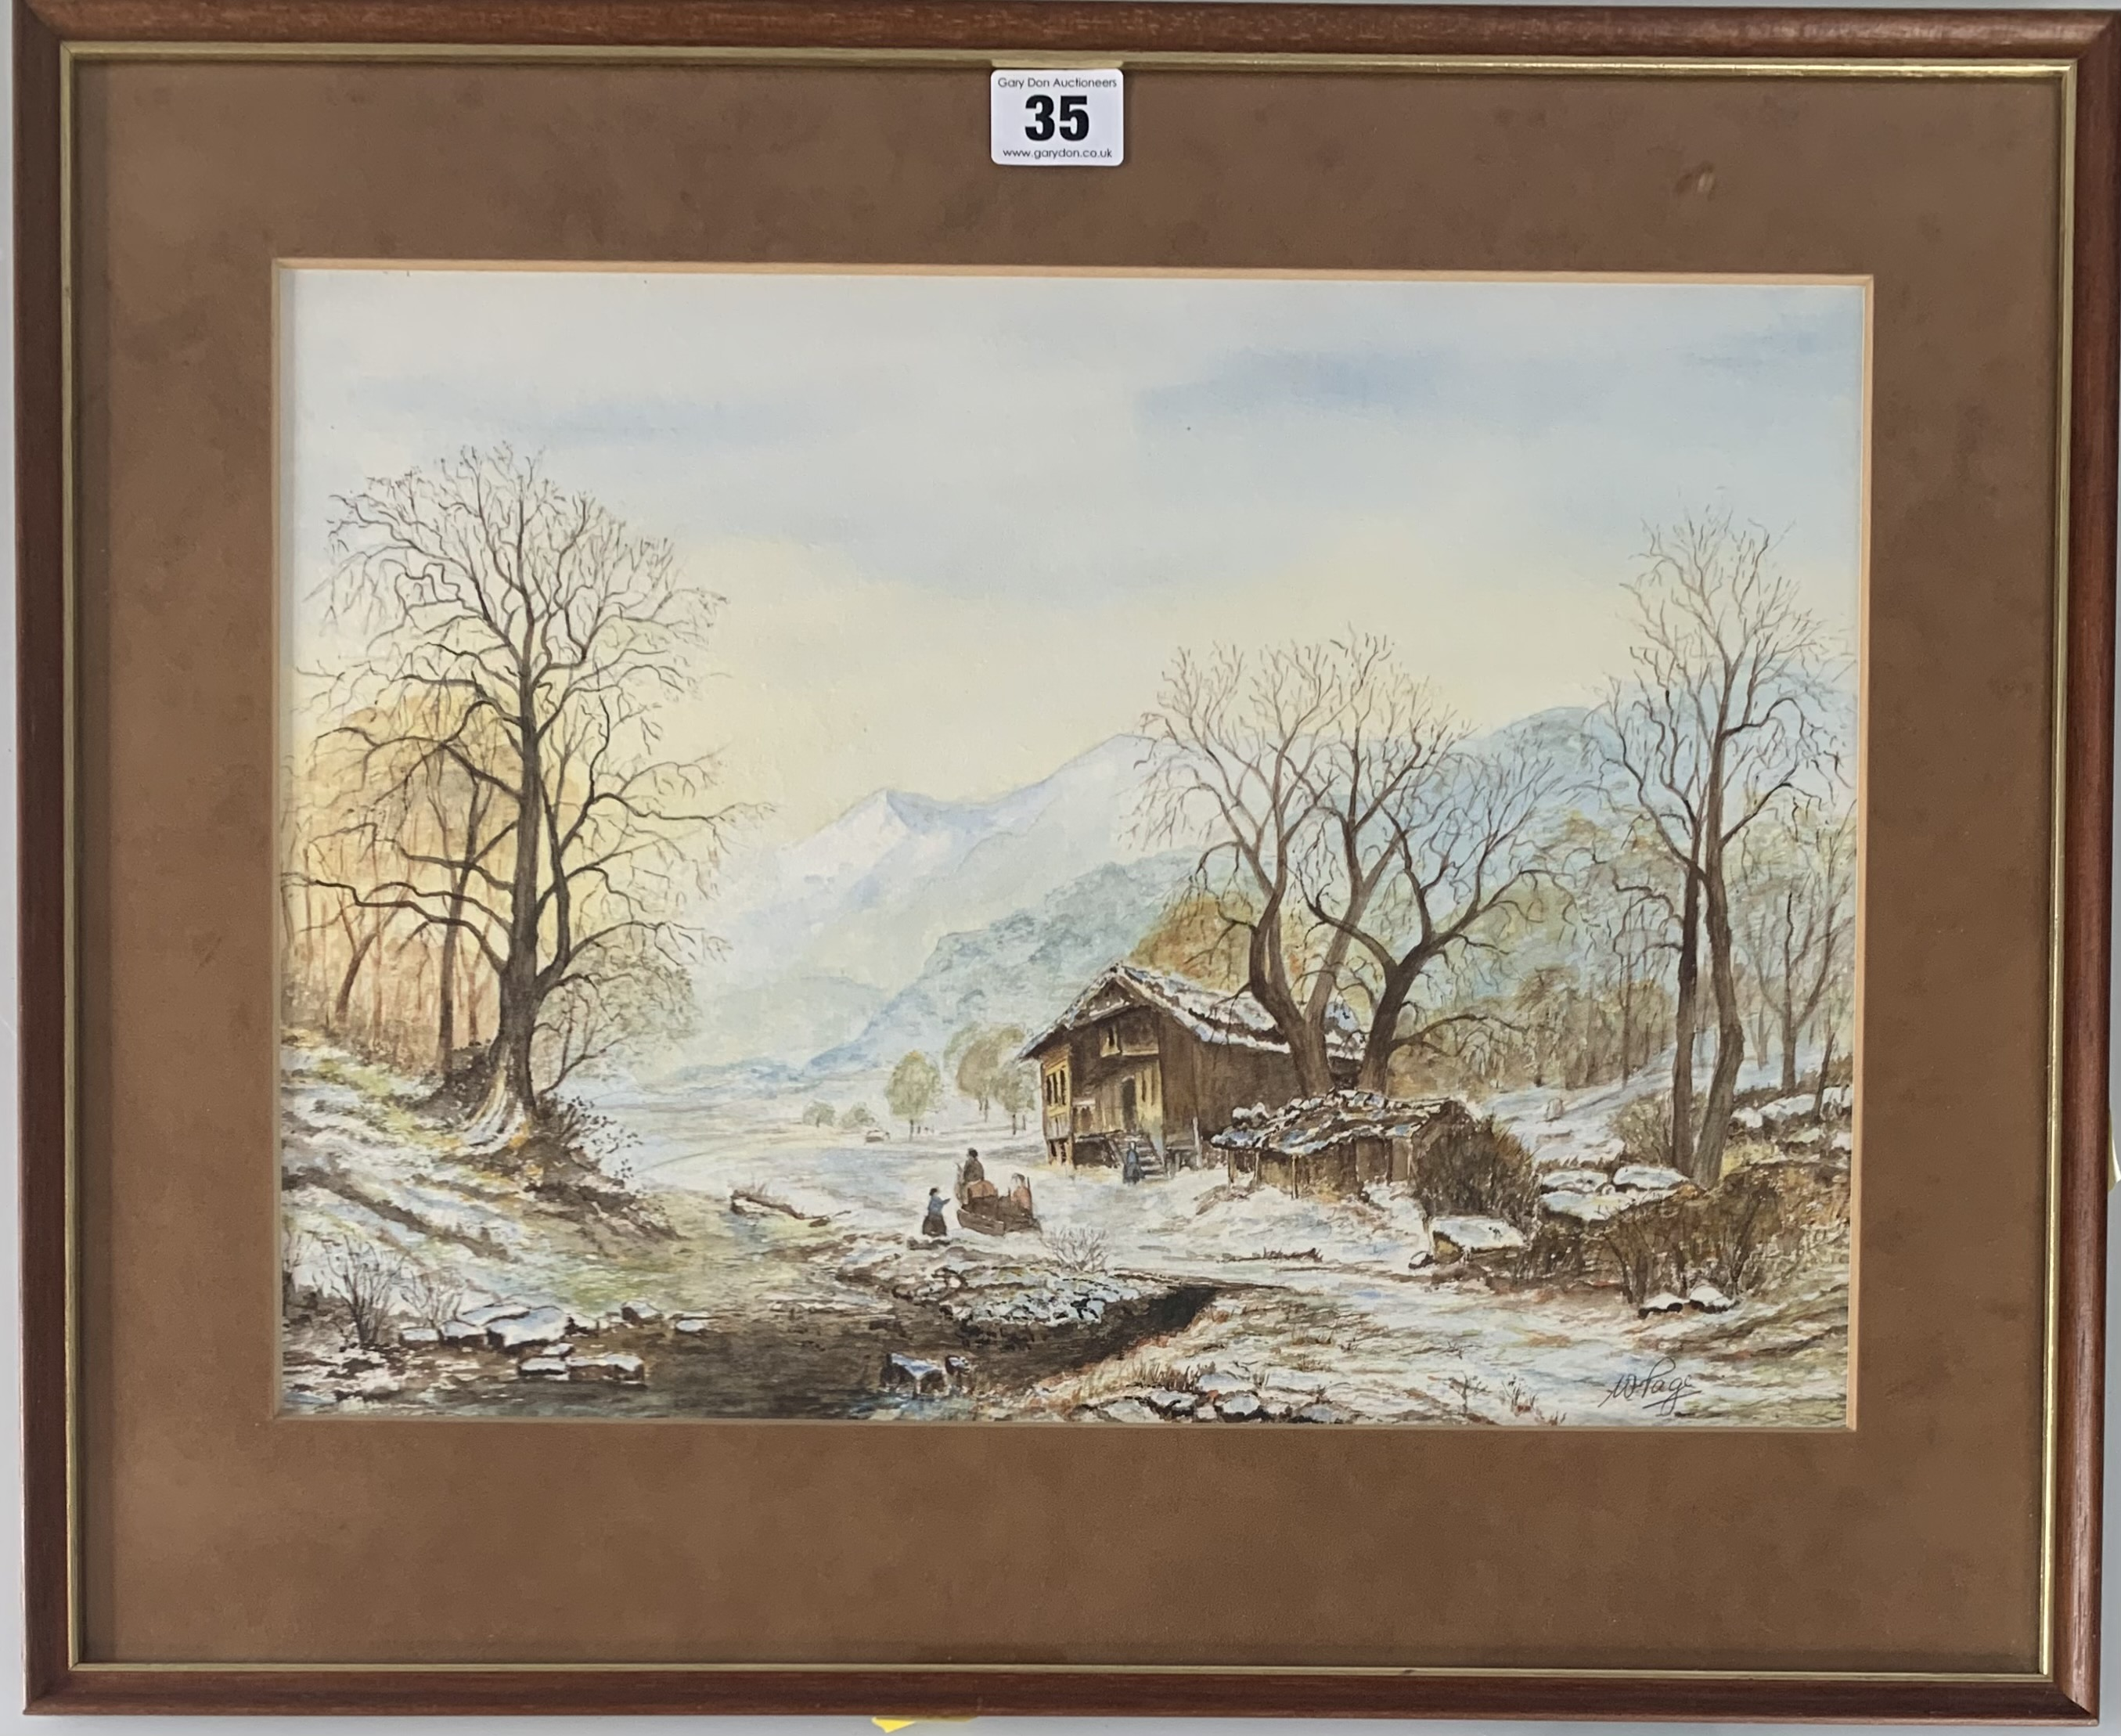 """Watercolour of winter house and landscape by W. Page. Image 15"""" x 11"""", frame 19.5"""" x 16"""". Headrow"""